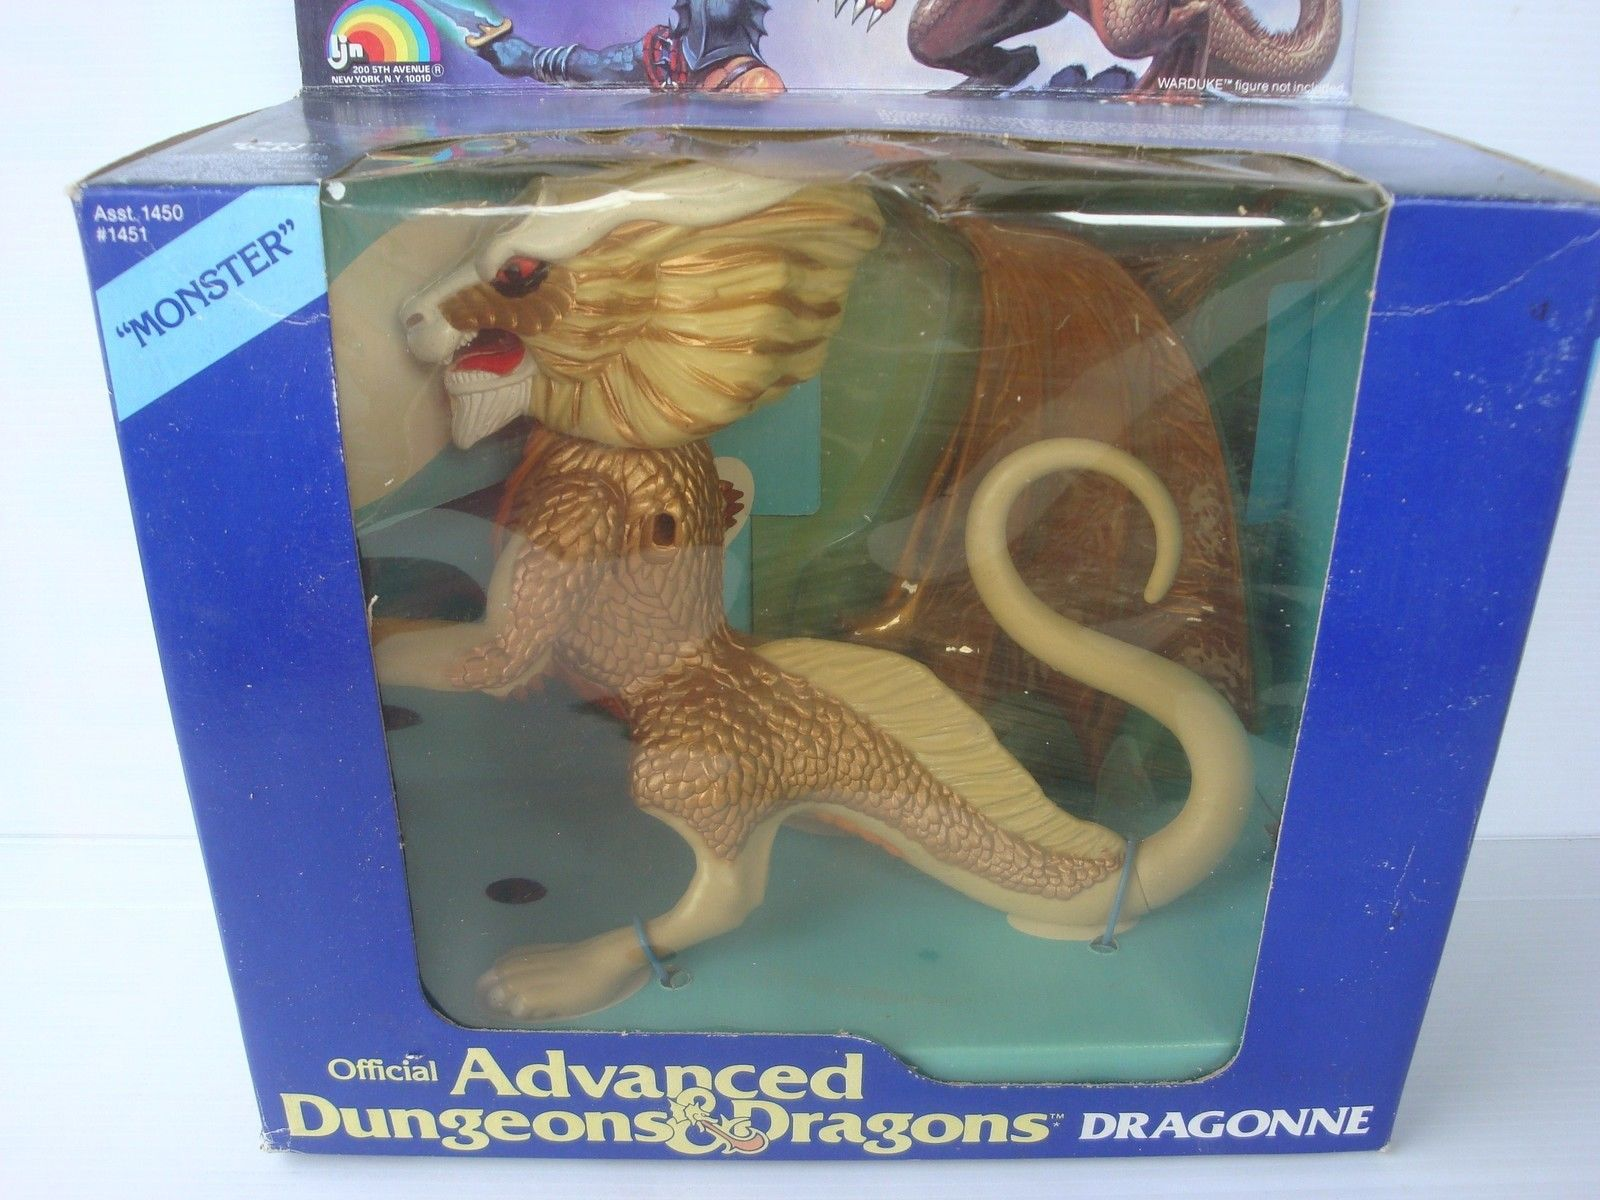 LJN's Advanced Dungeons & Dragons Toys: Dragonne – Half